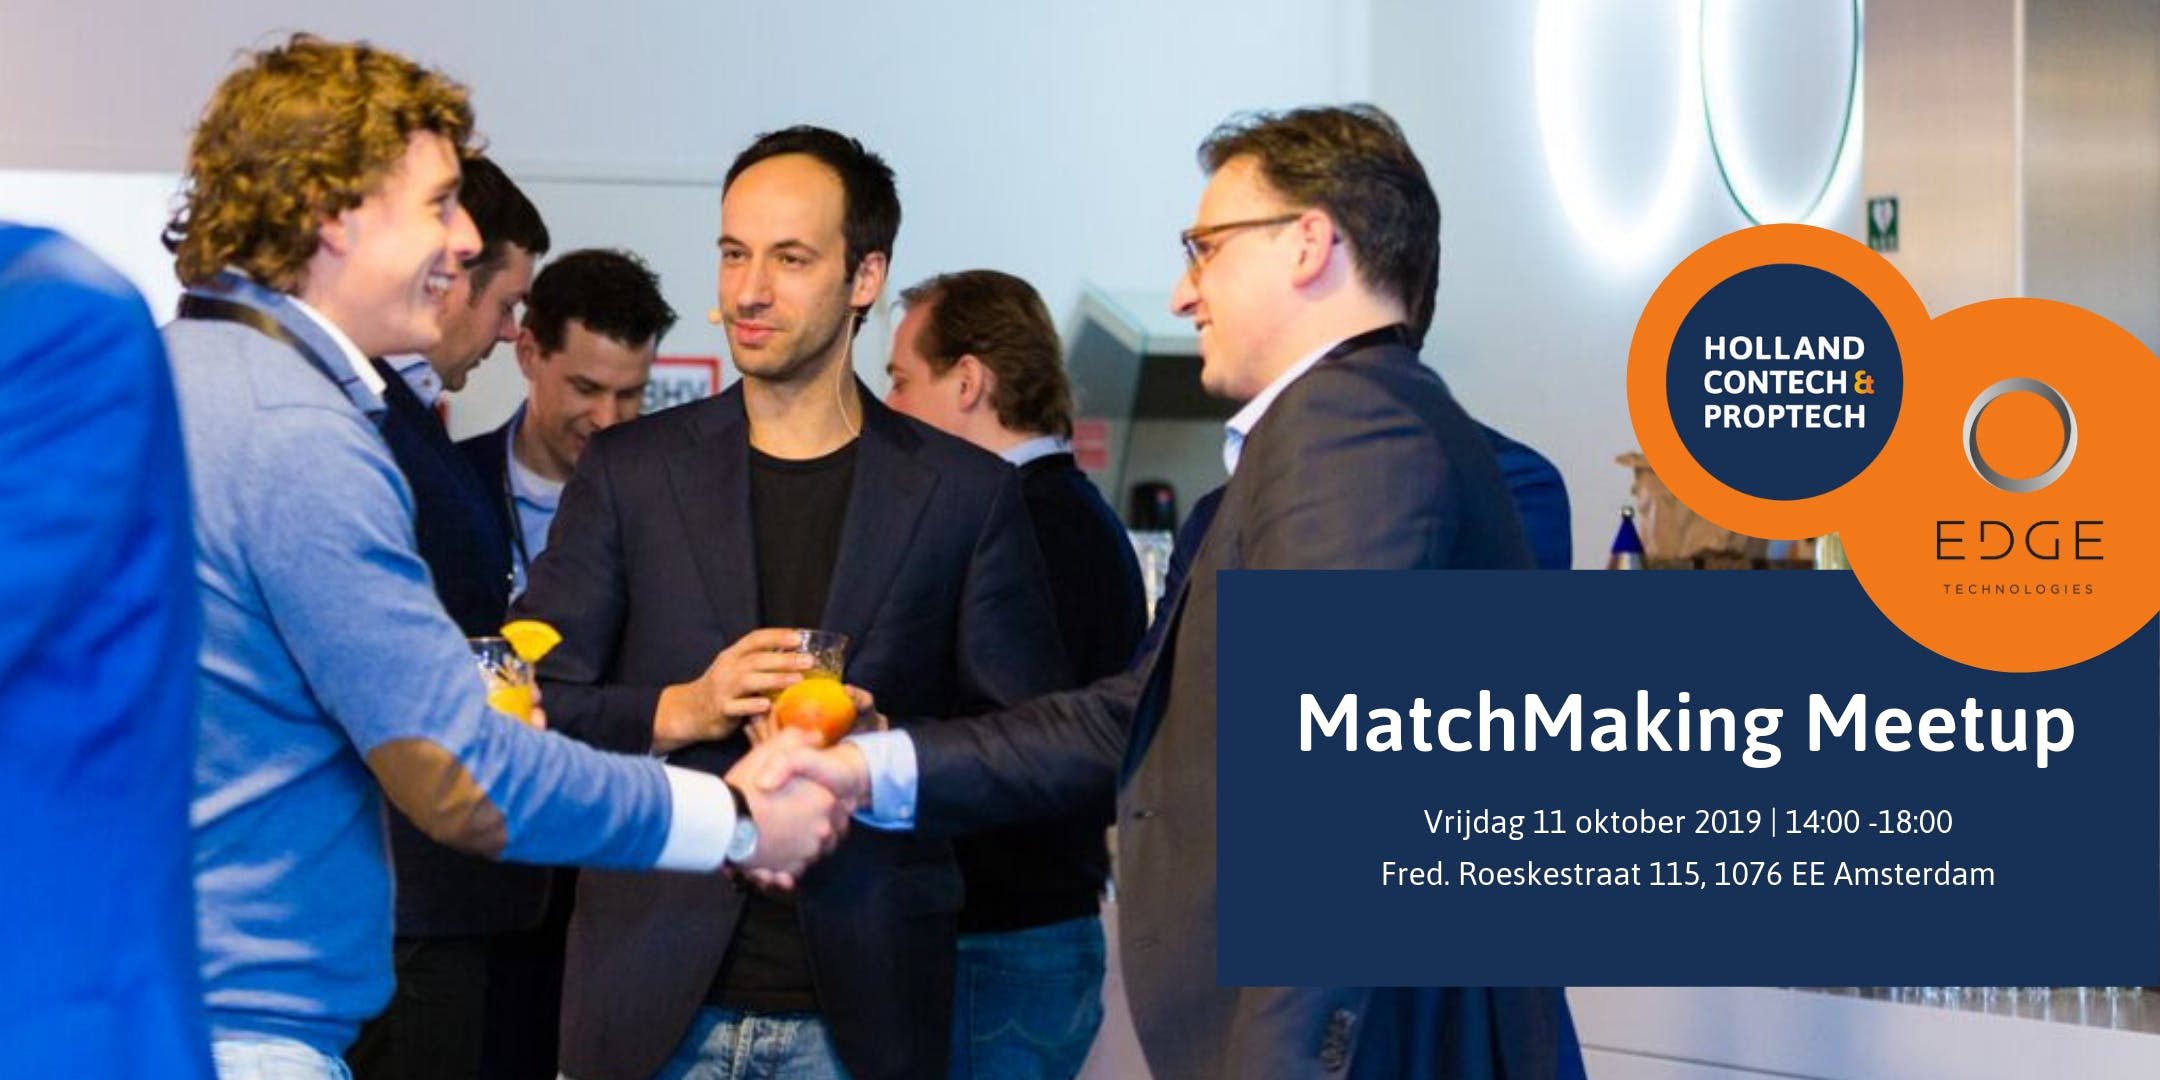 MatchMaking Meetup hosted by EDGE Technologies